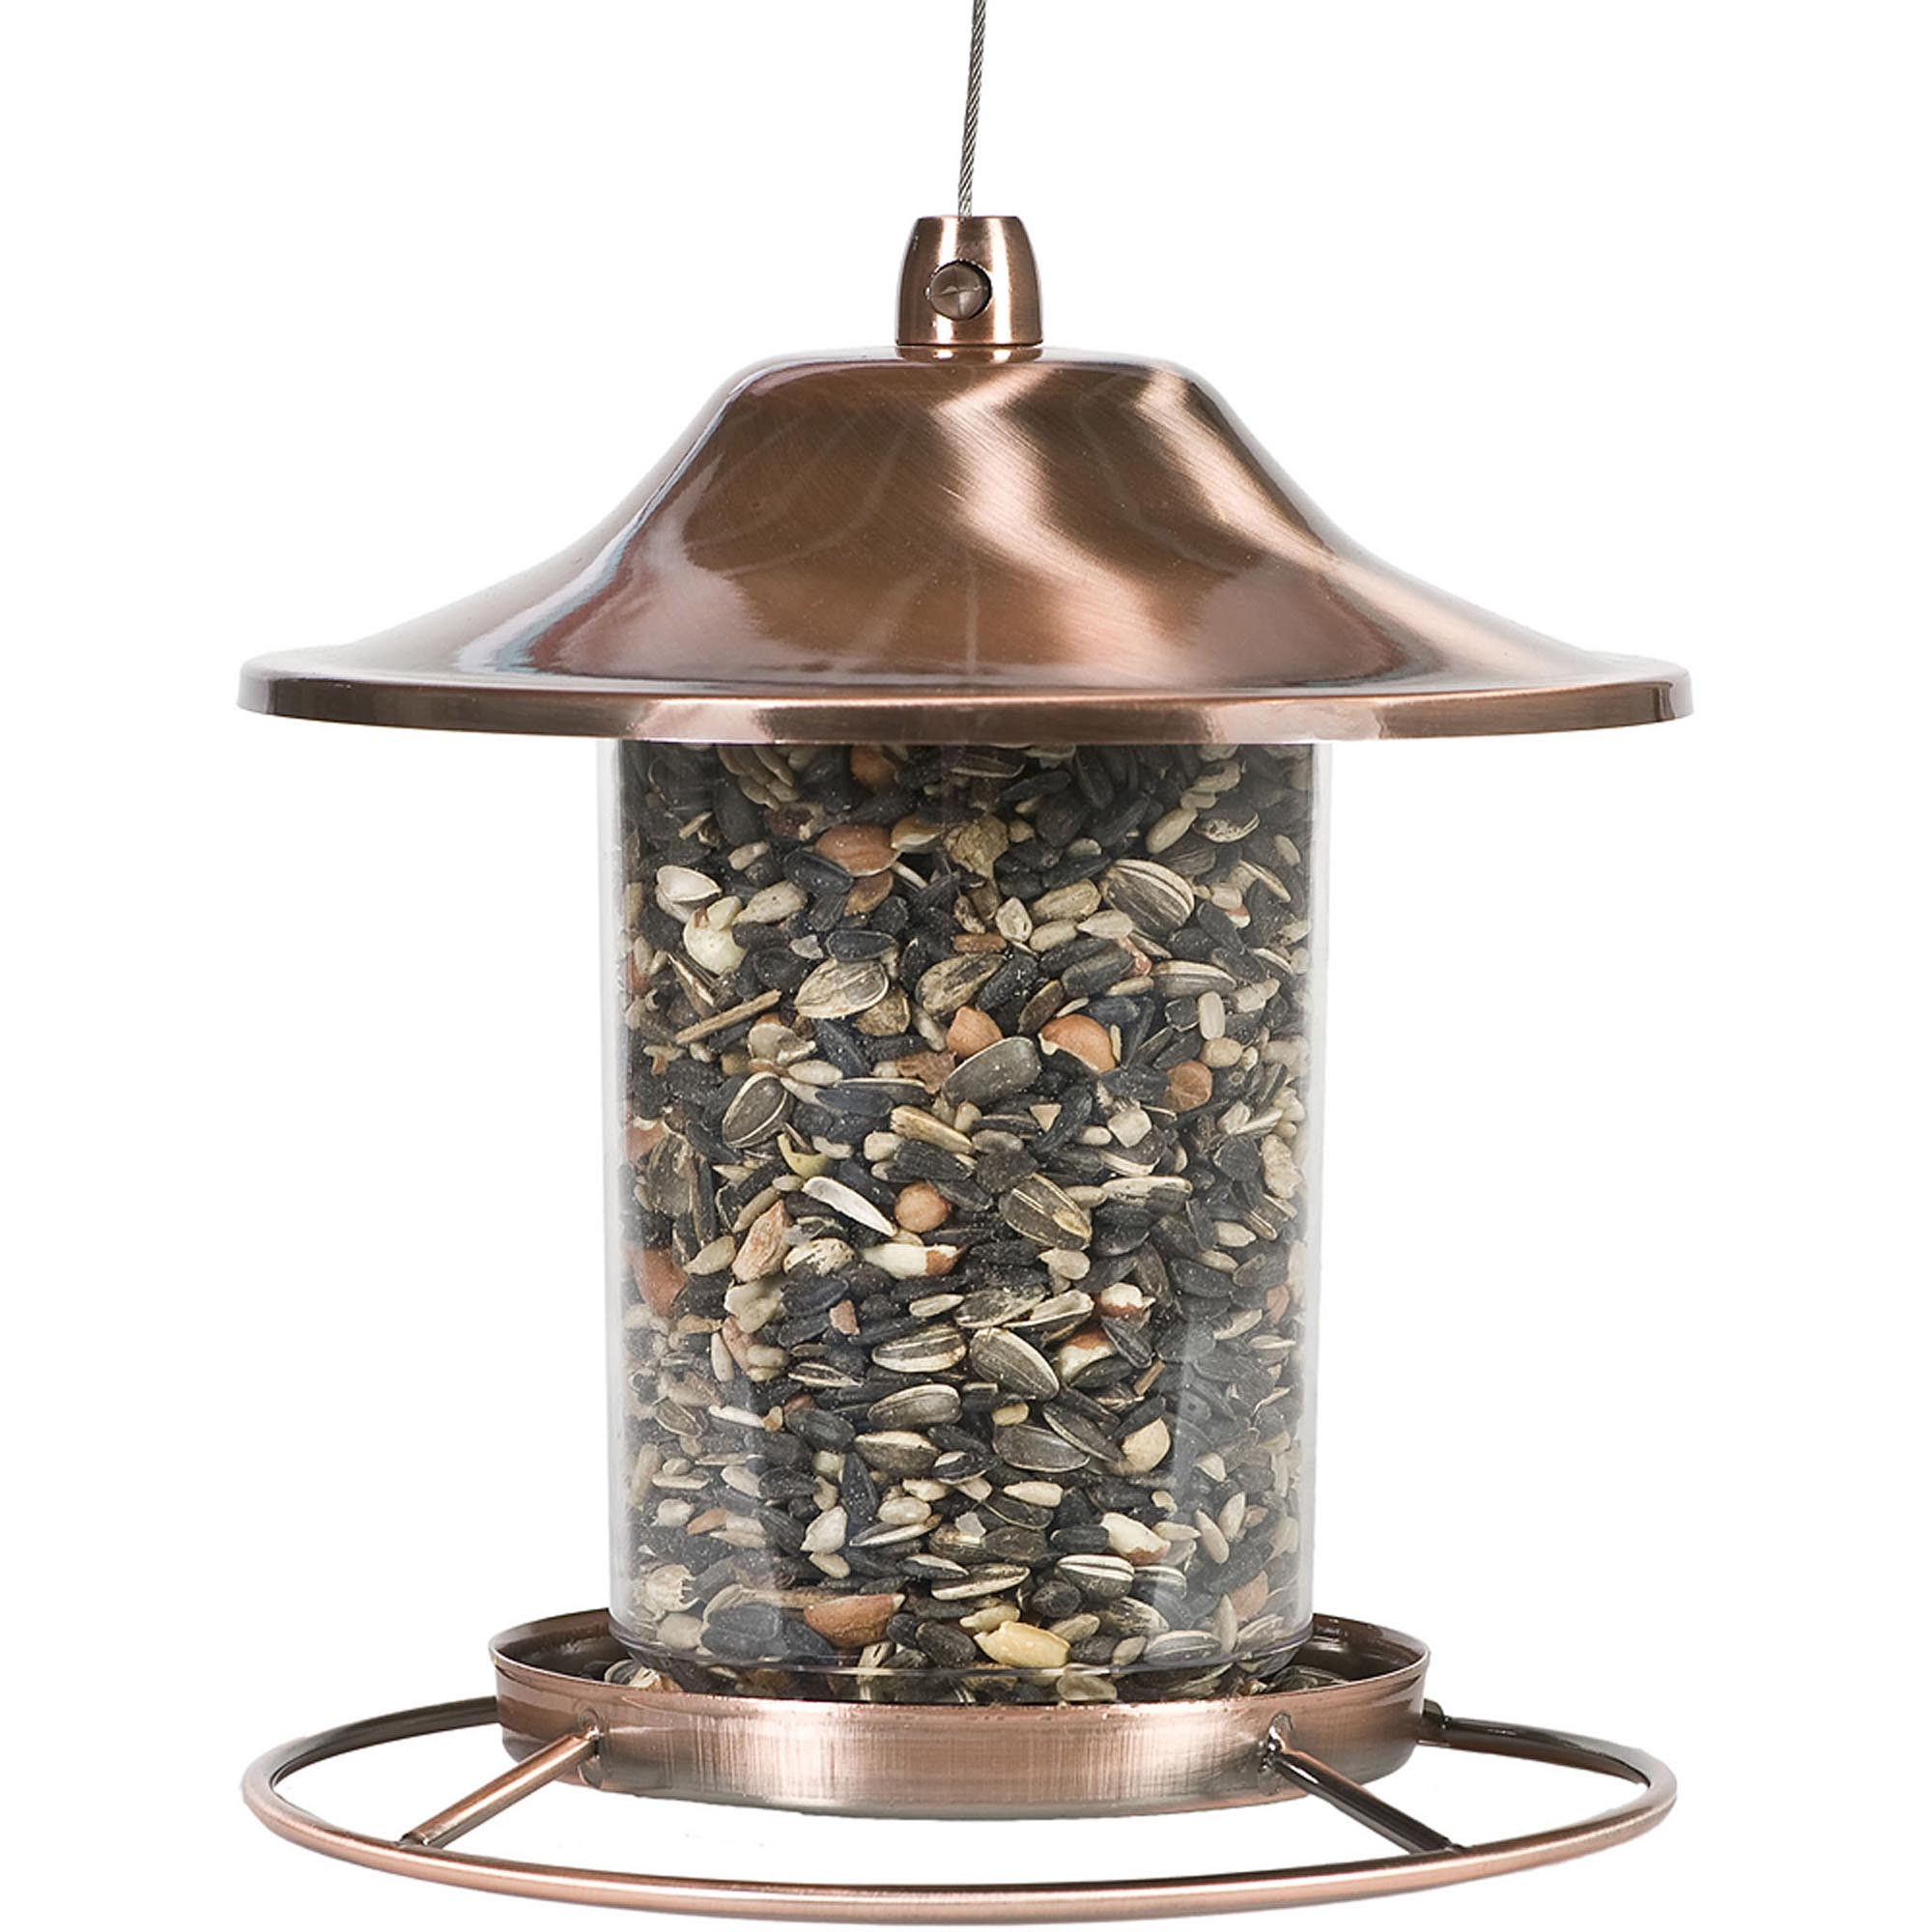 Perky Pet Copper Bird Feeder